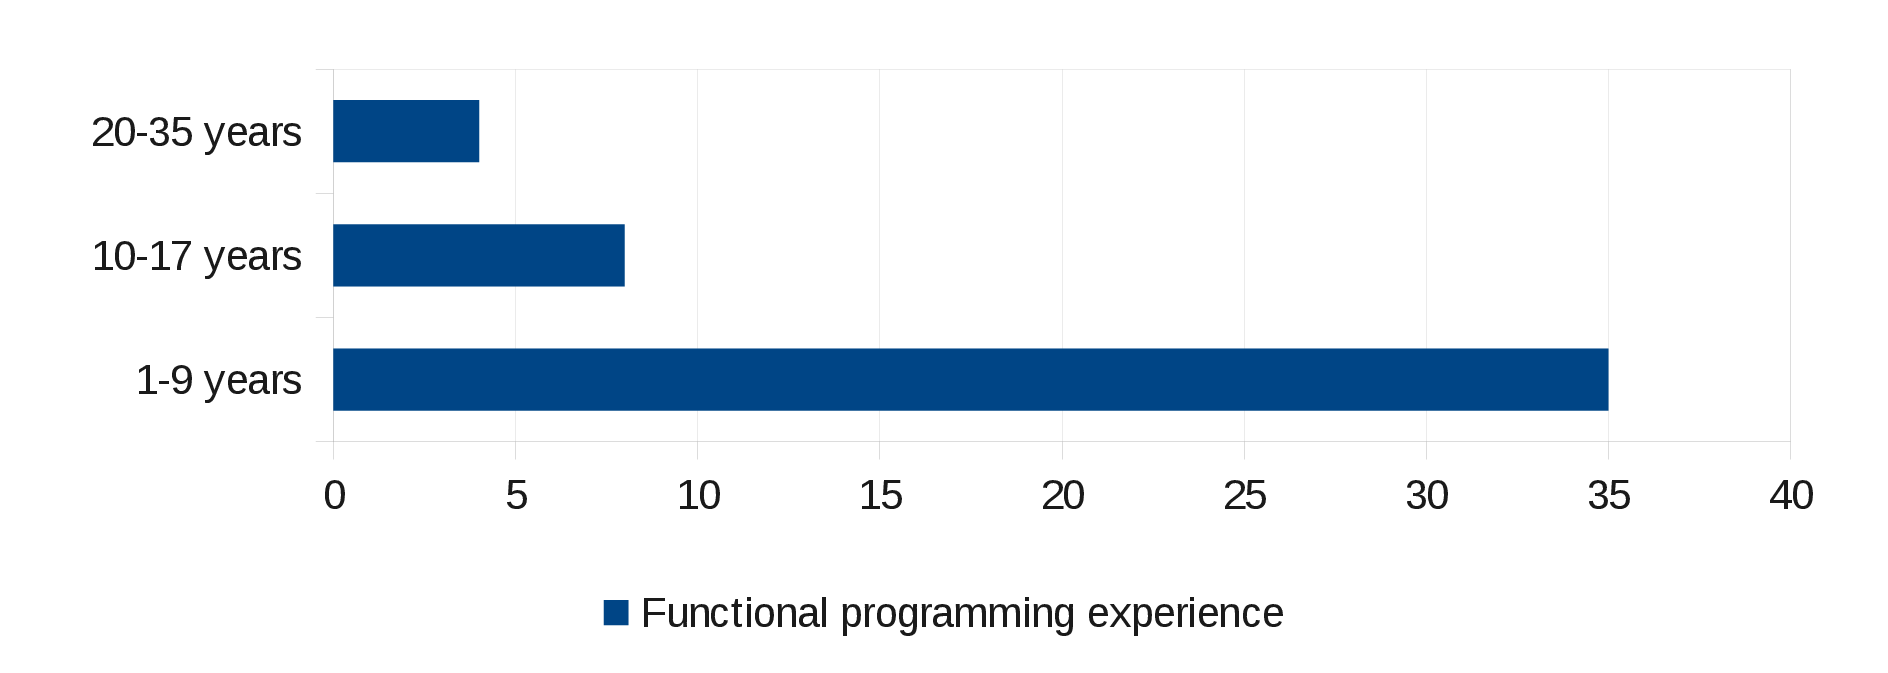 Functional programmign experience